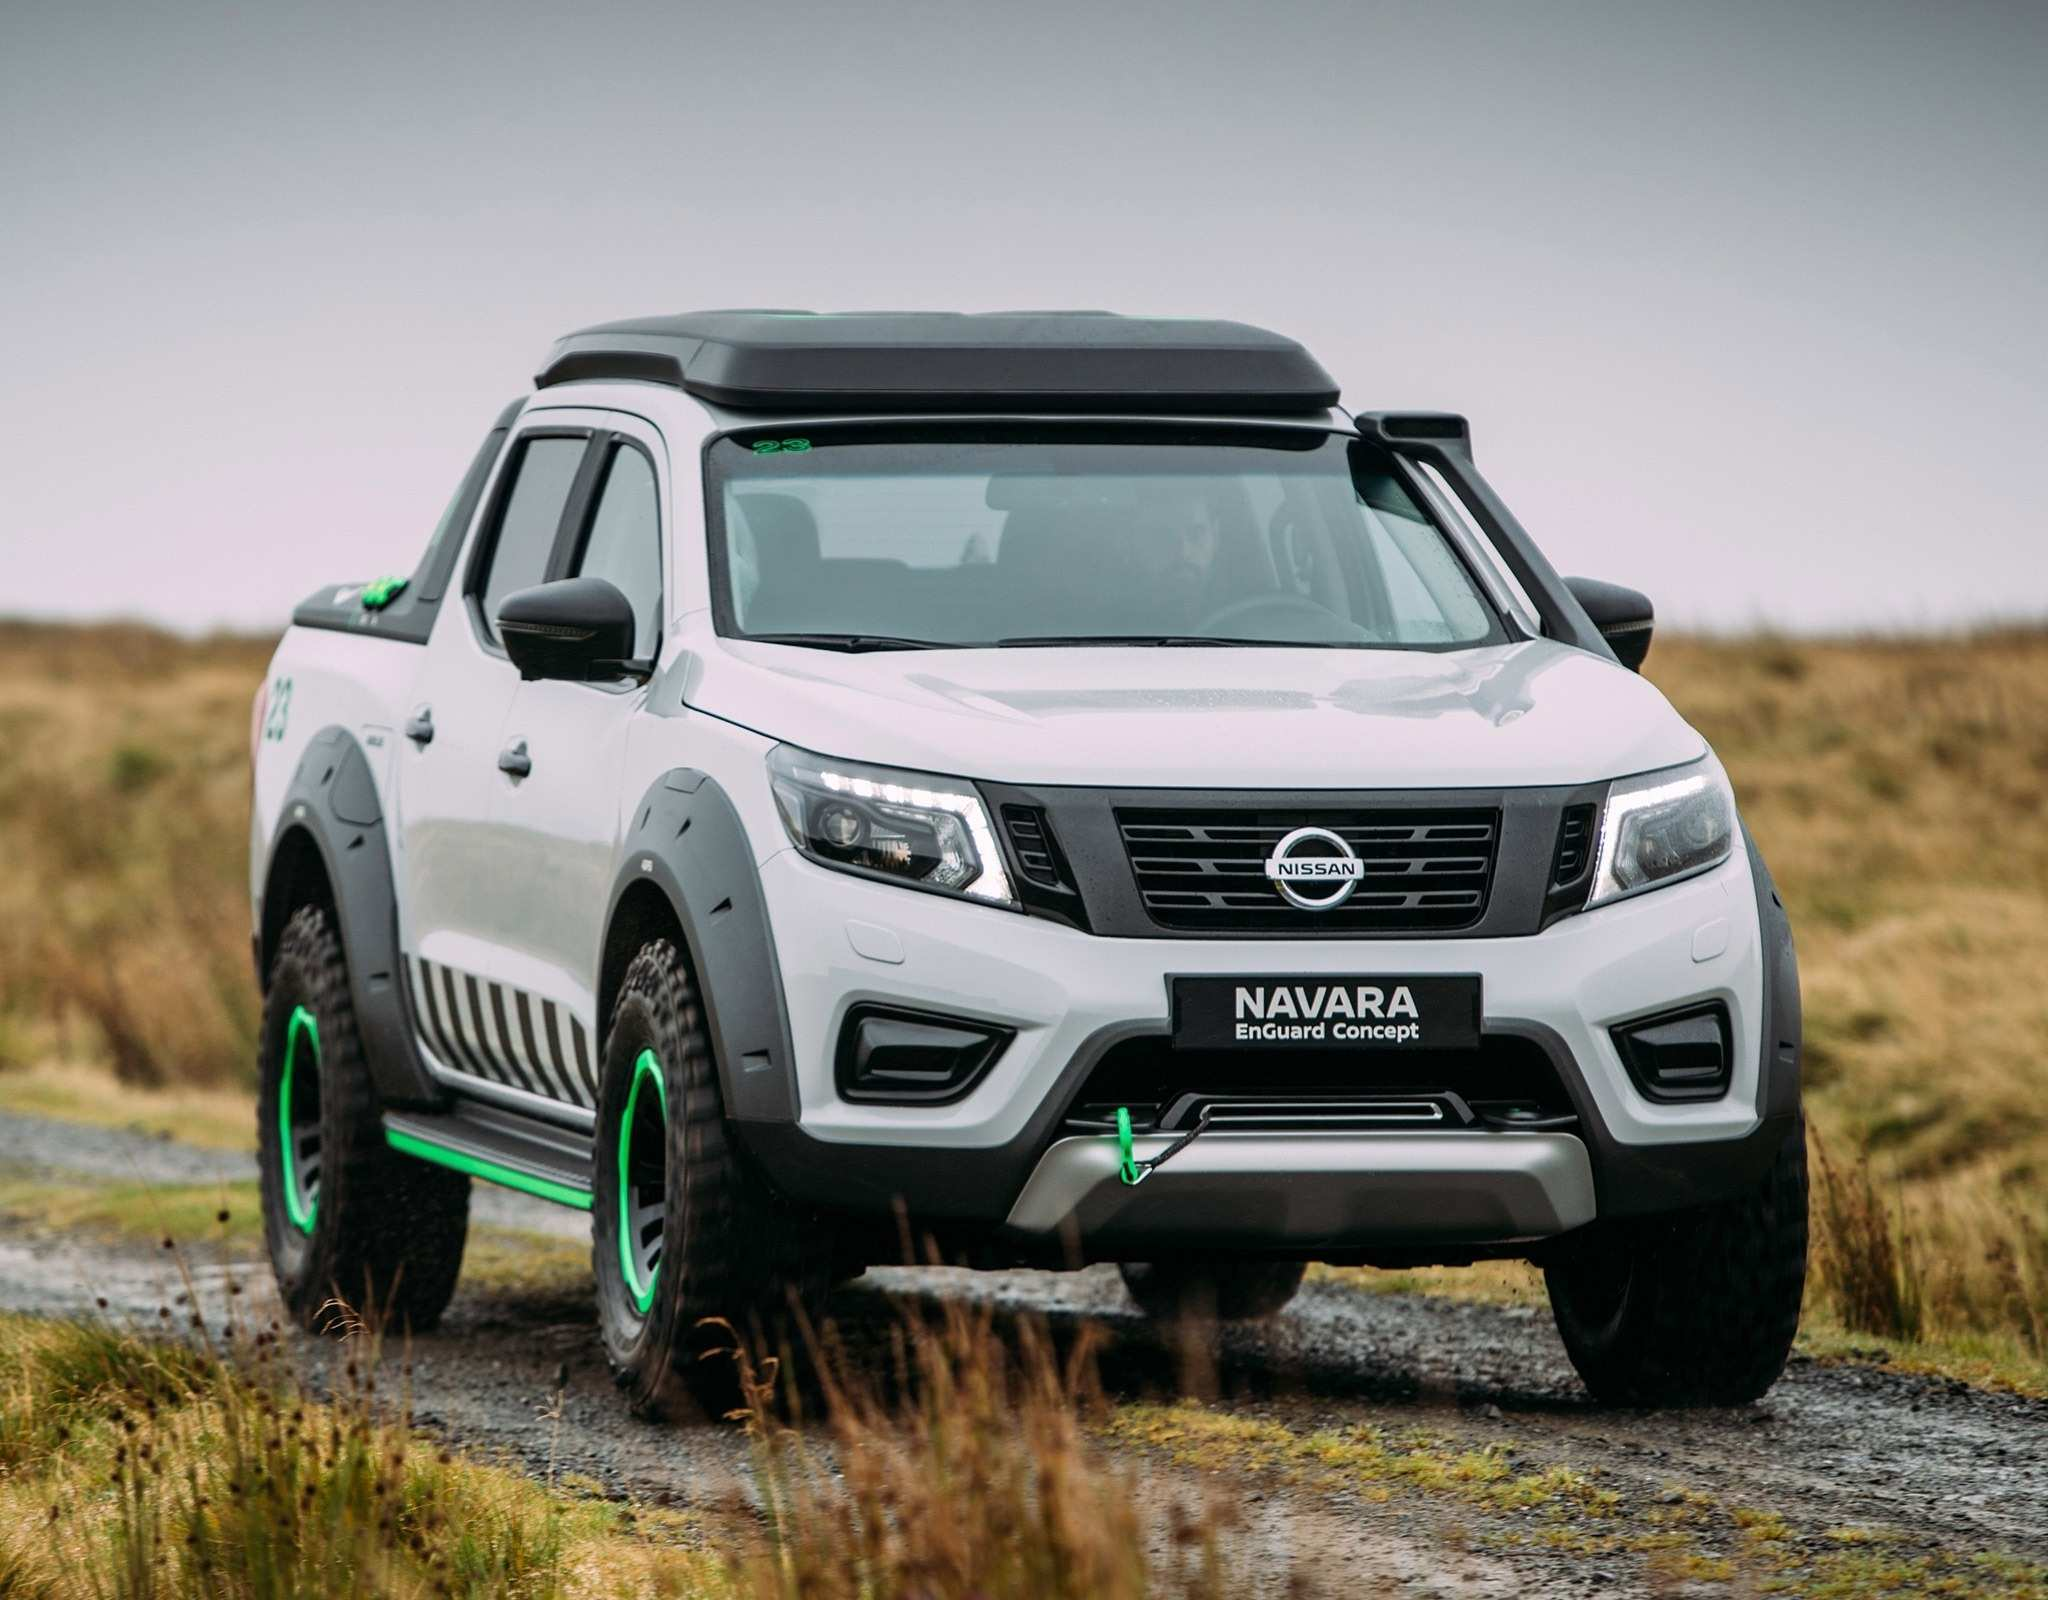 80 The 2020 Nissan Navara Spy Shoot for 2020 Nissan Navara